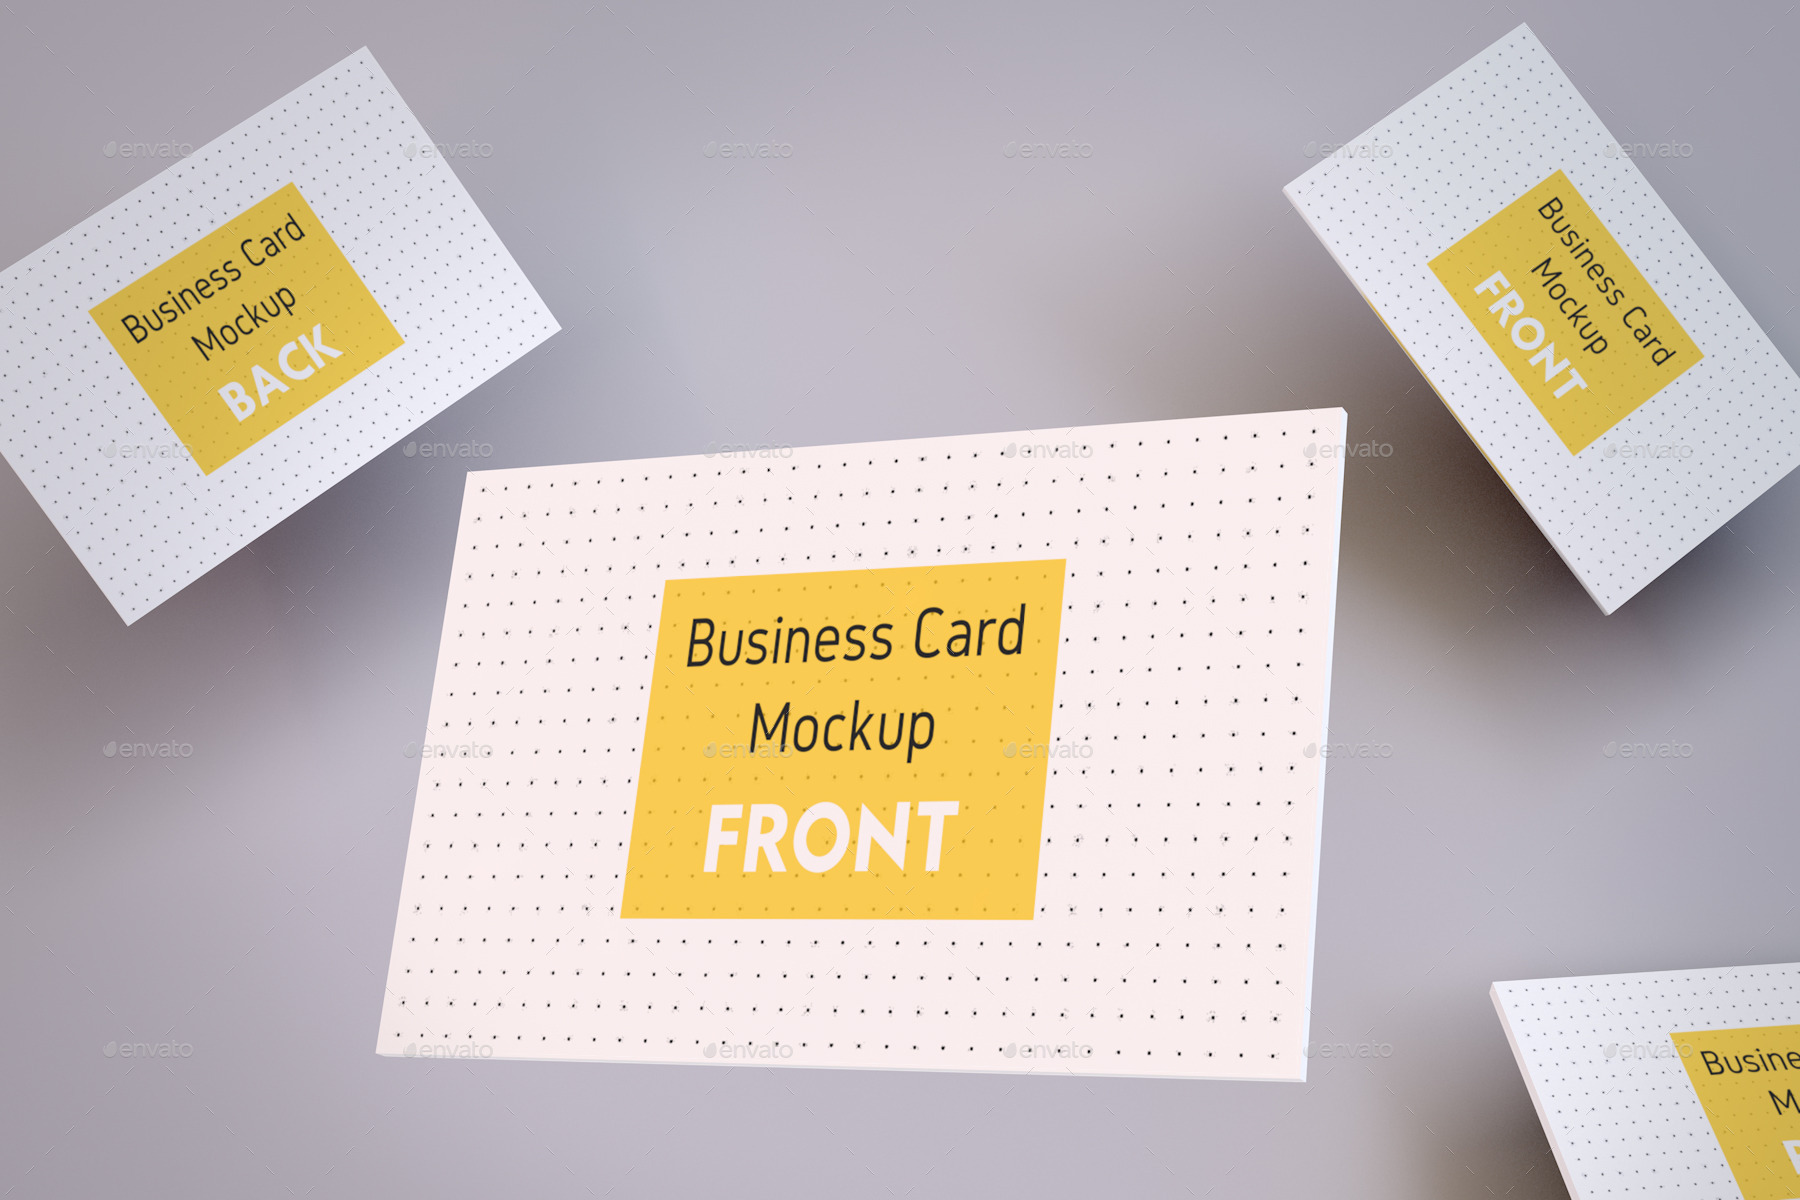 Realistic Business Card and A4 paper Mockup Pack by Peninsulastudioz